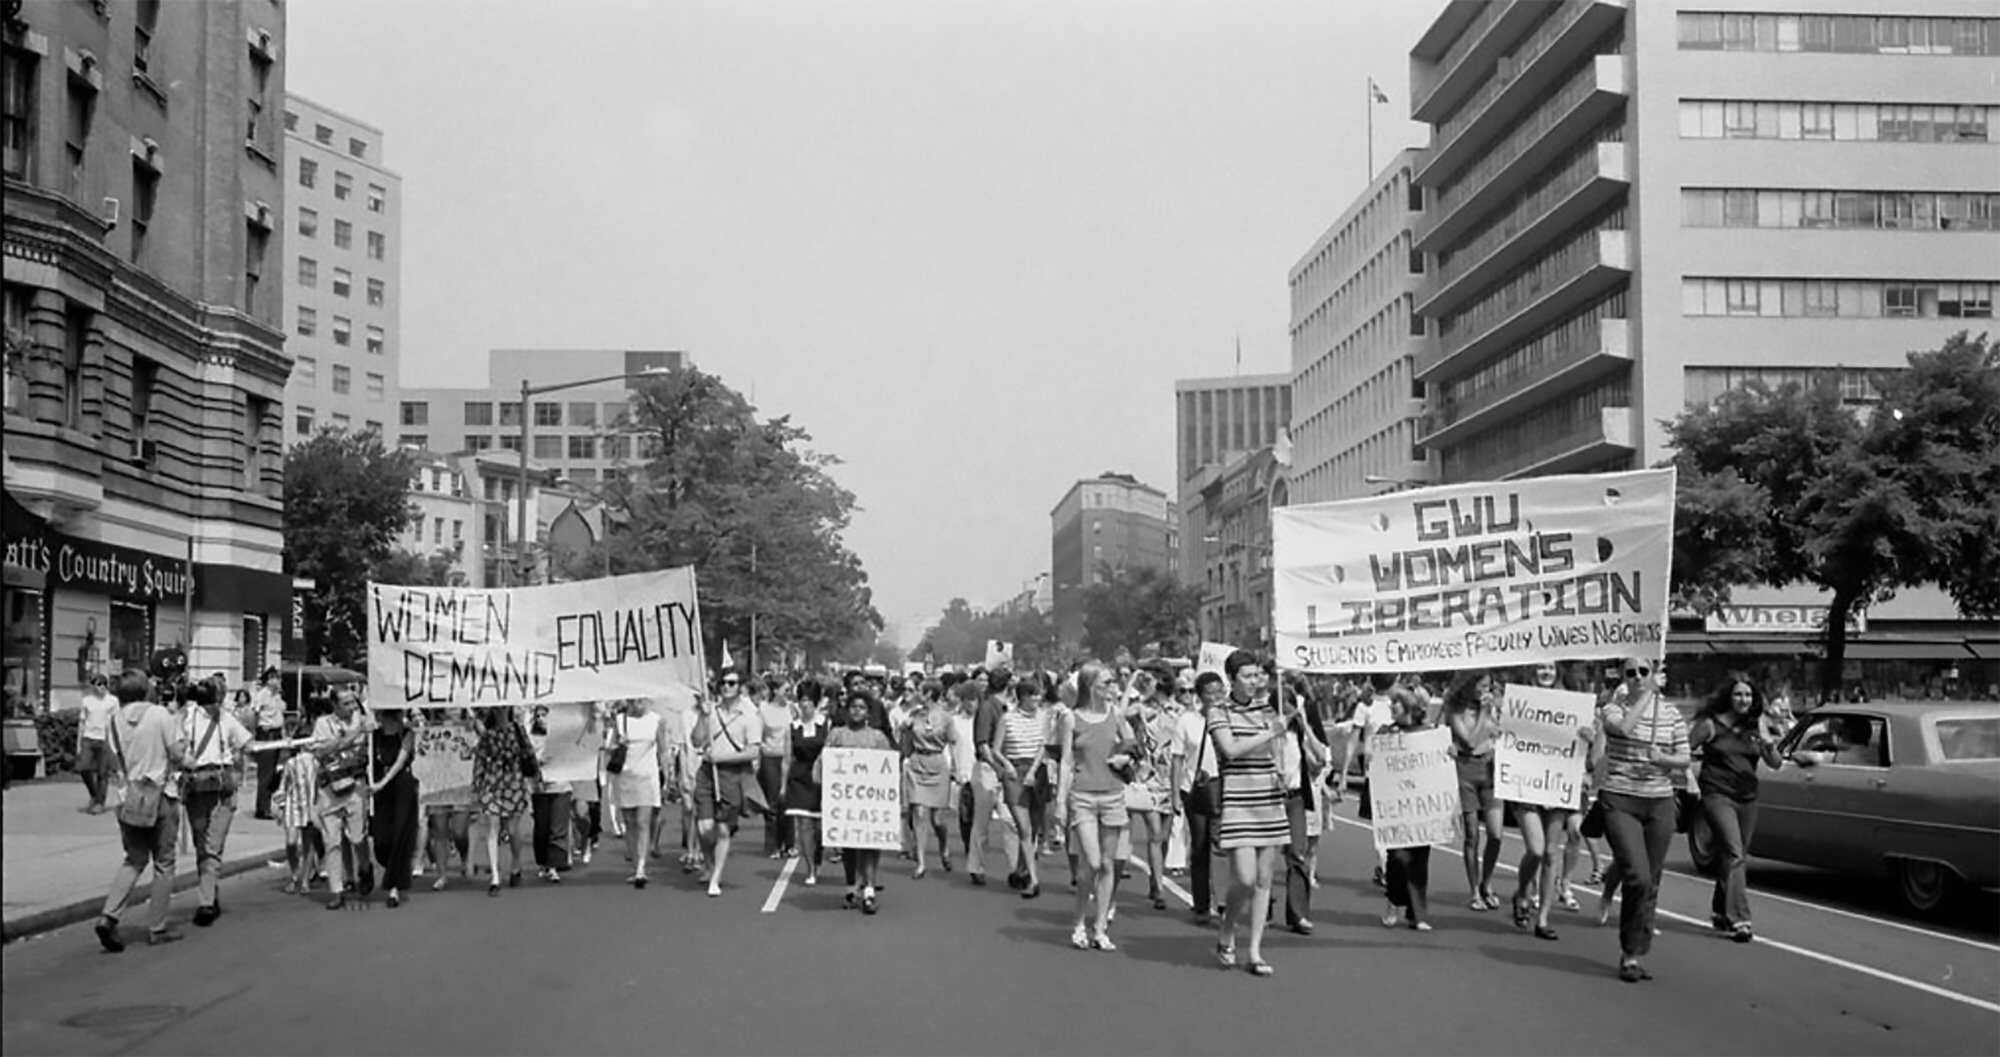 Pill-Women-liberation-LOC-1970-Washington-DC.jpg